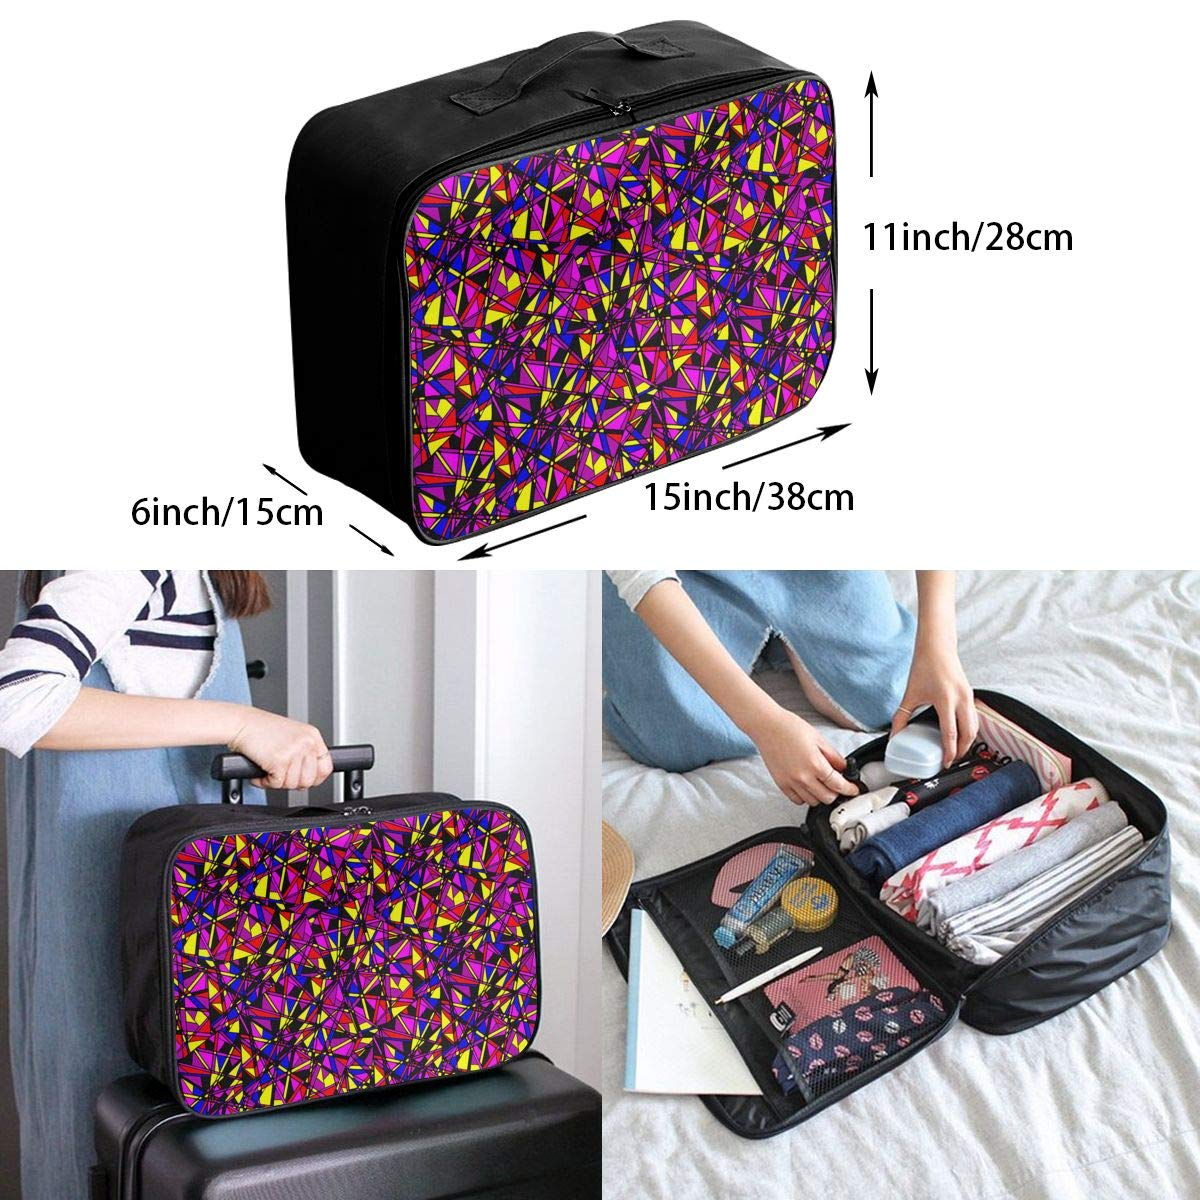 ADGAI Abstract Seamless Pattern with Neon Canvas Travel Weekender Bag,Fashion Custom Lightweight Large Capacity Portable Luggage Bag,Suitcase Trolley Bag